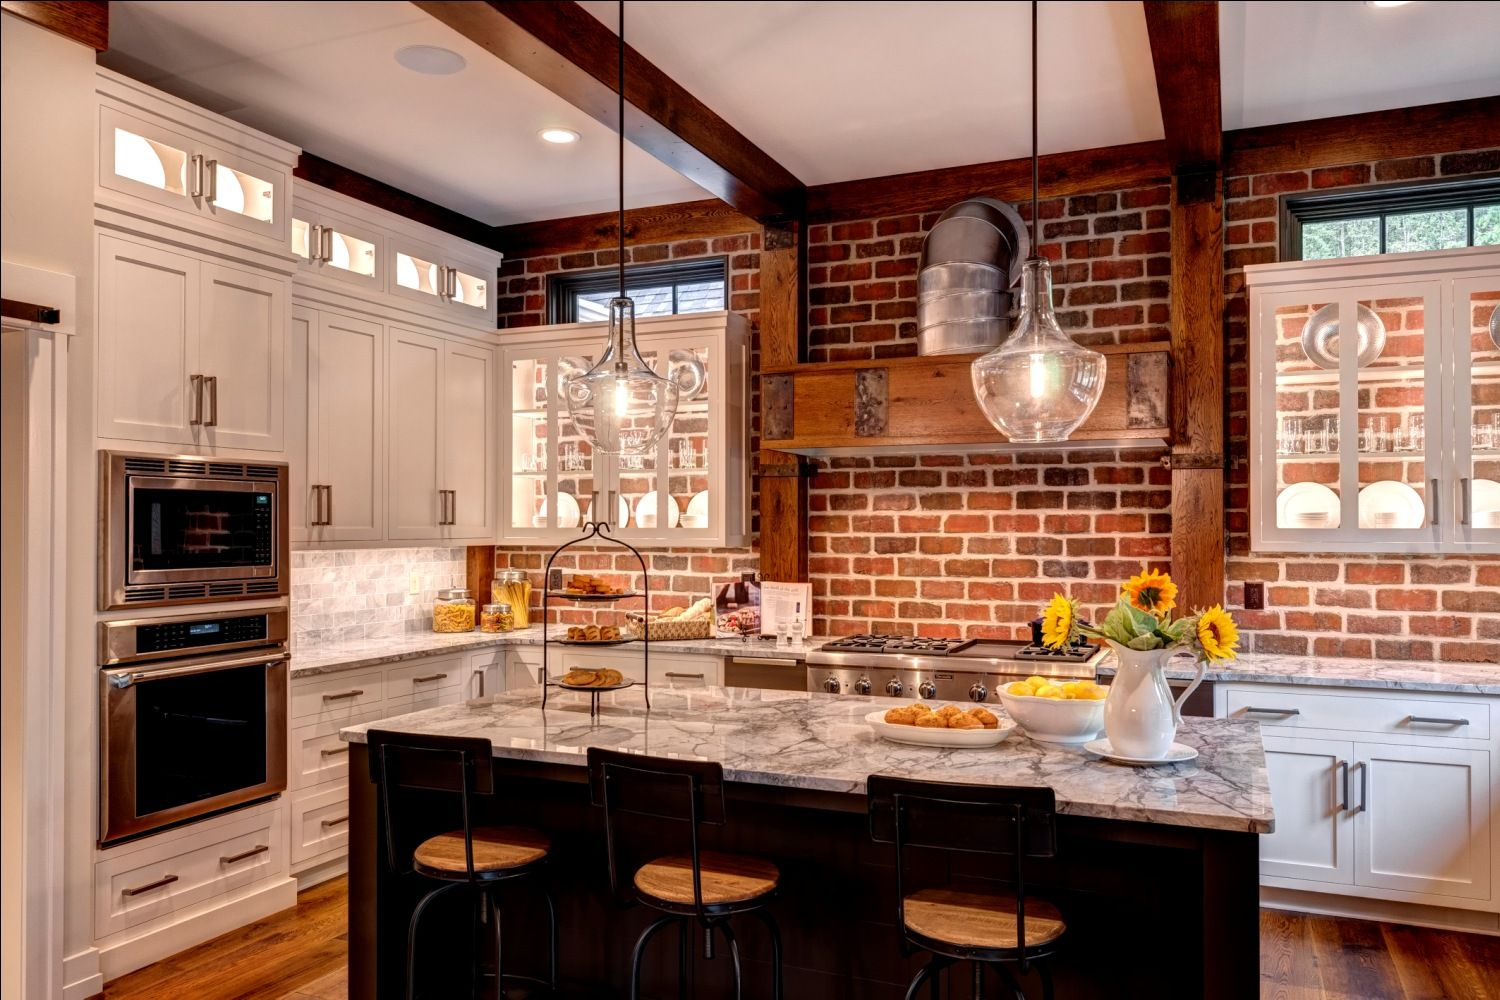 Brick Wall In Kitchen With White Cabinets Glass Cabinet Doors To